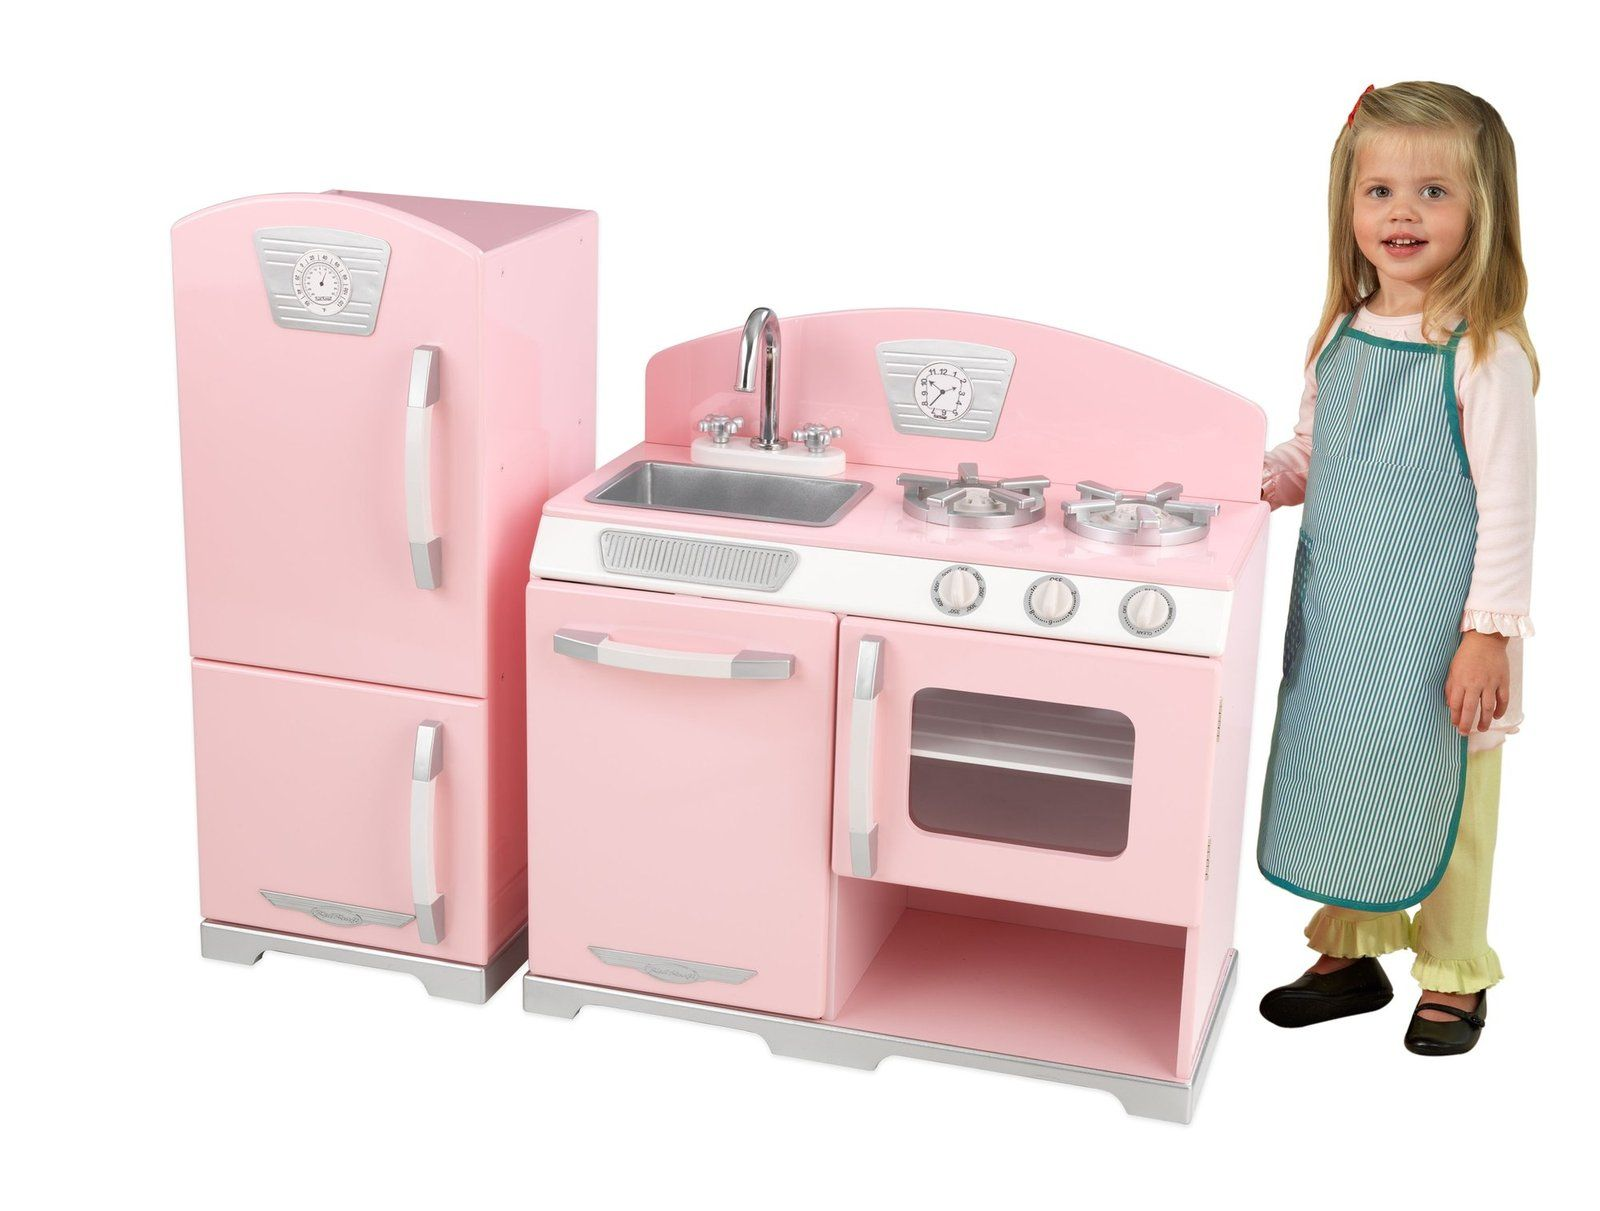 KidKraft Pink Retro Kitchen and Refrigerator - Free Shipping